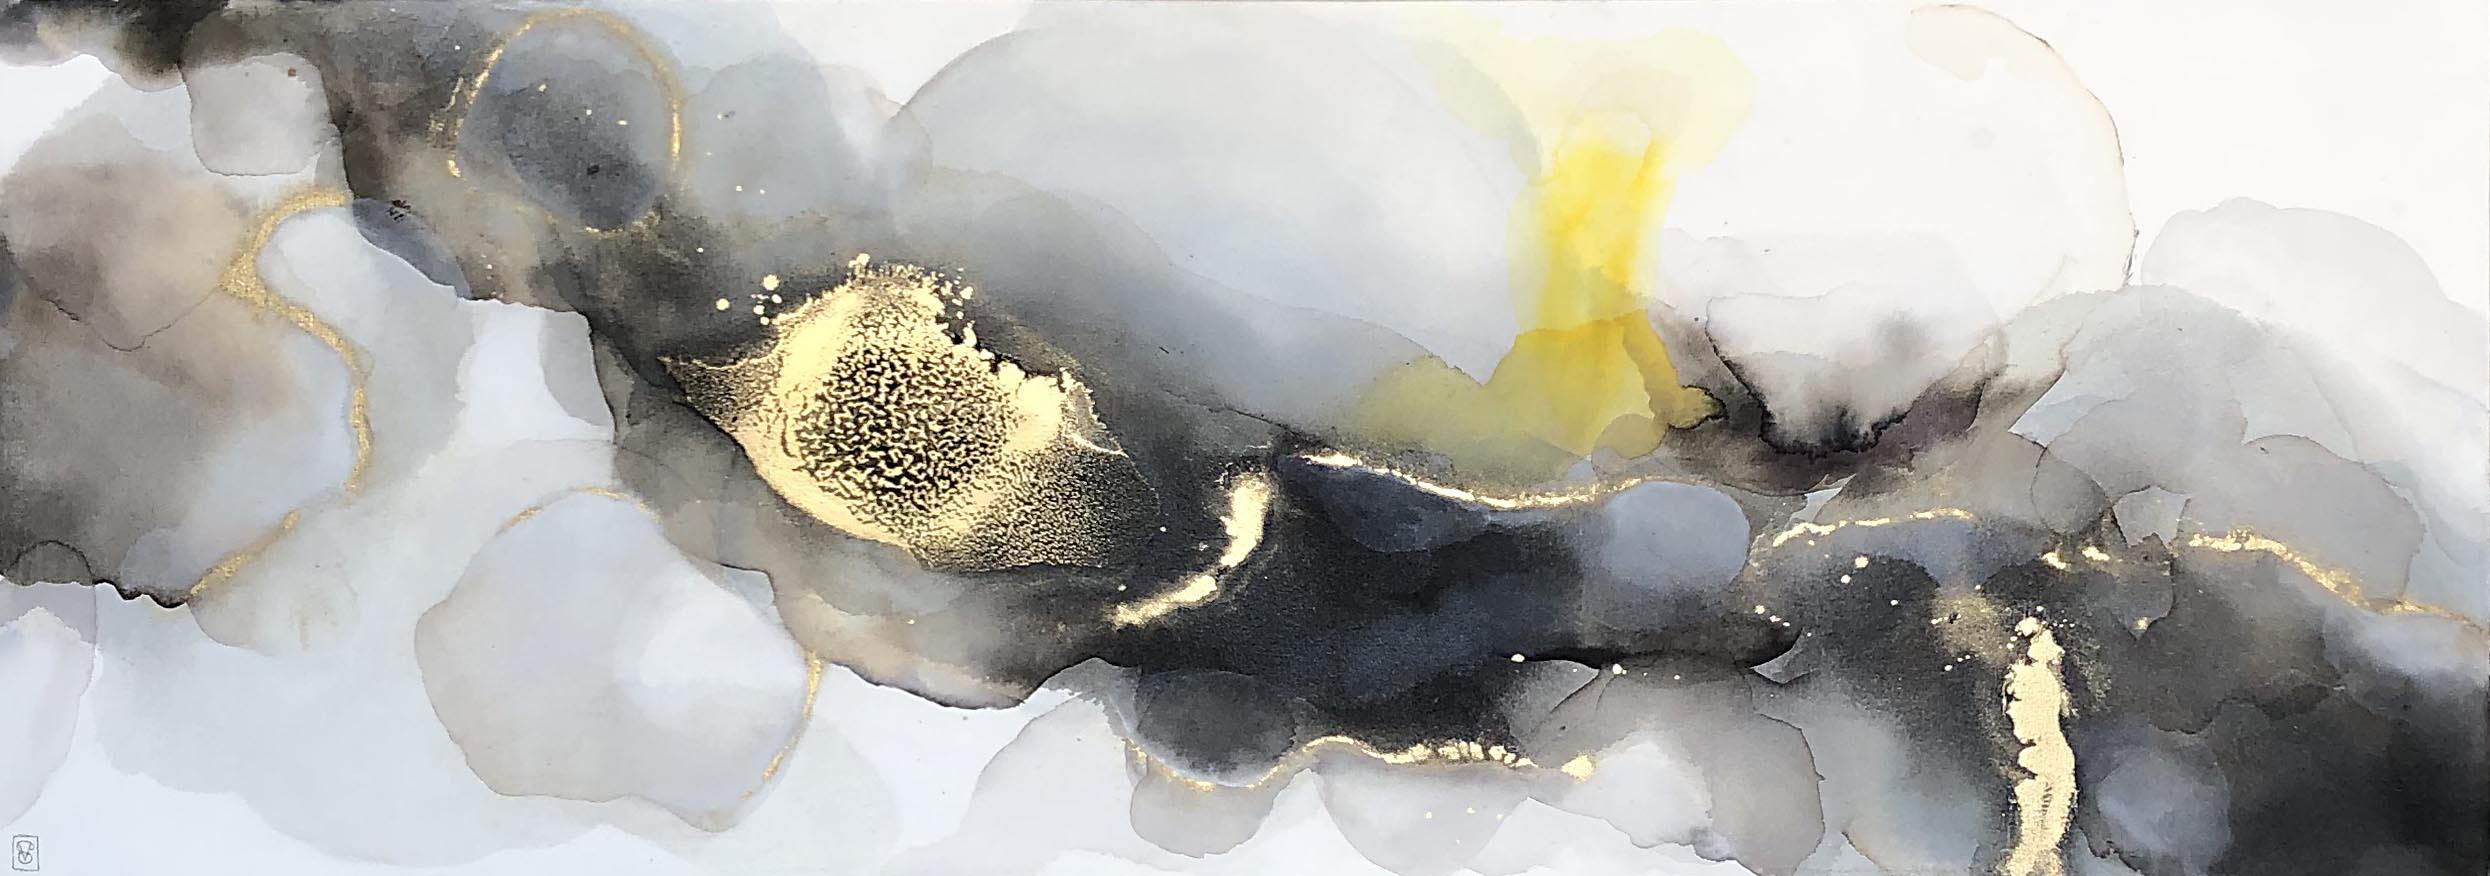 Vicky Sanders Abstract - Inky Clouds